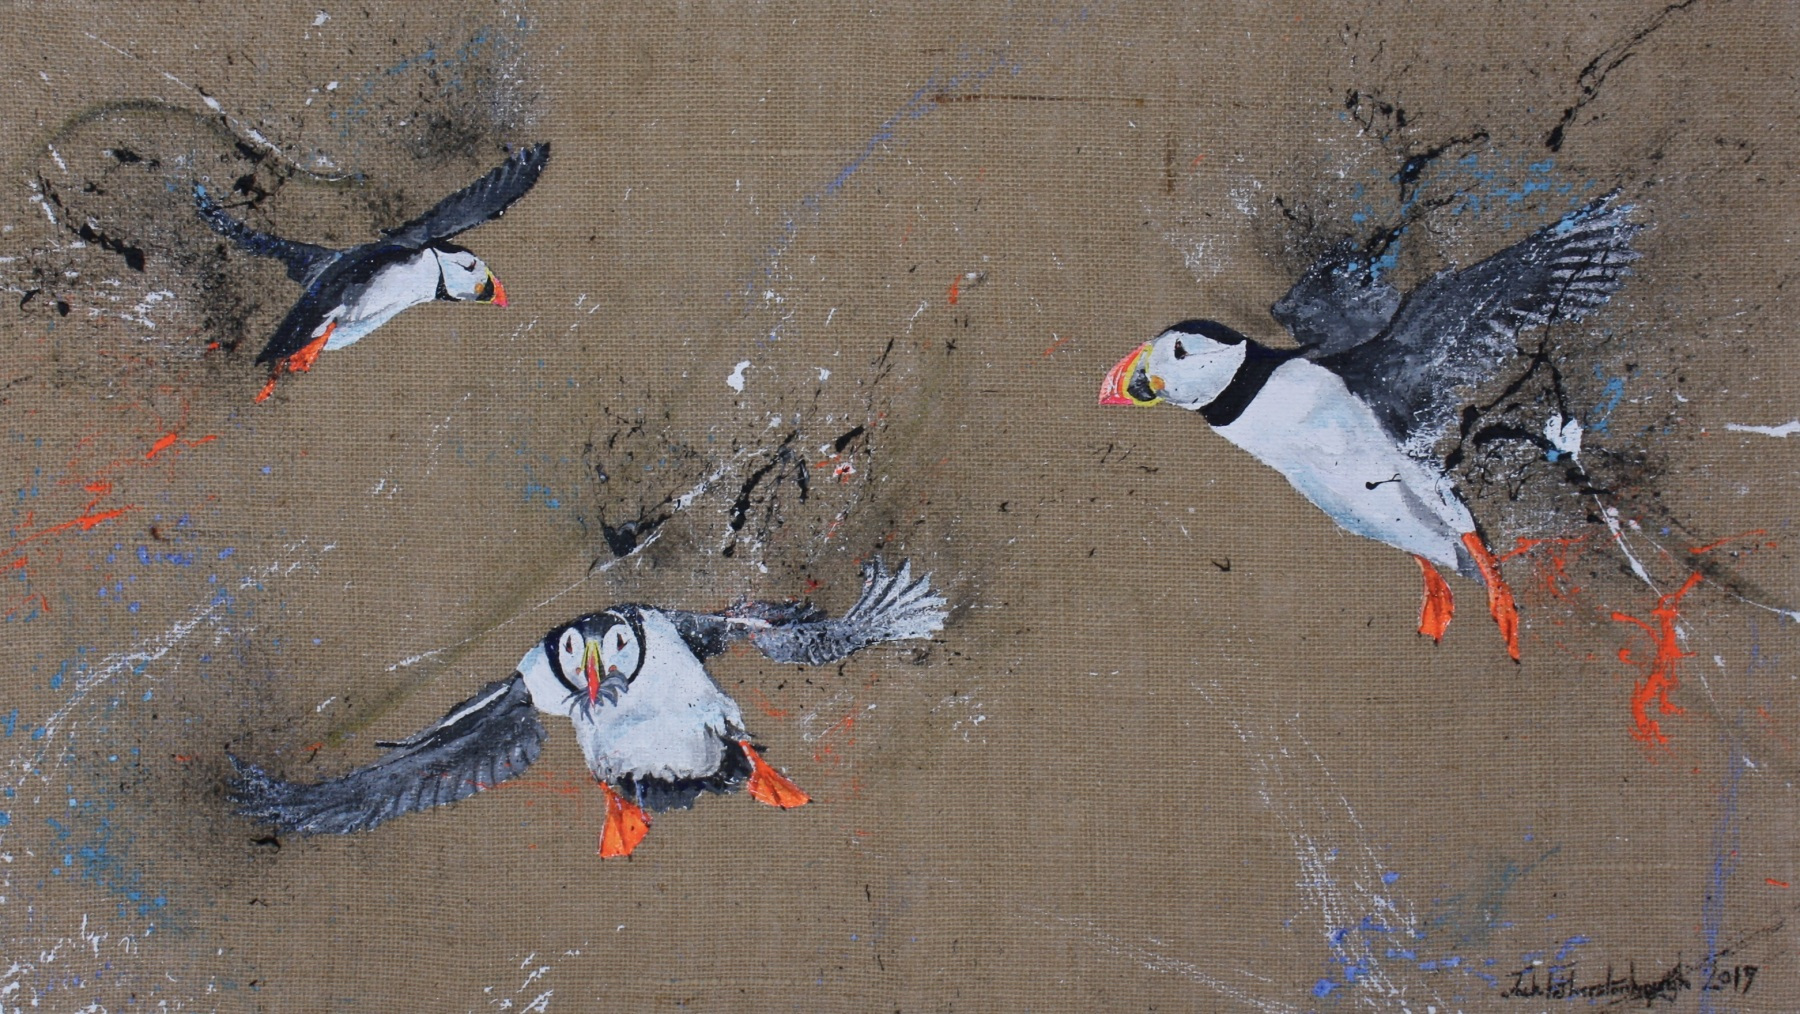 """JACK FETHERSTONHAUGH   TRIO OF PUFFINS   ACRYLIC ON HESSIAN   40 x 70cm   £1,250<br /><a class=""""buy-button"""" href=""""mailto:info@dacre-art.com?subject=Website%20Enquiry"""">Enquire</a>"""